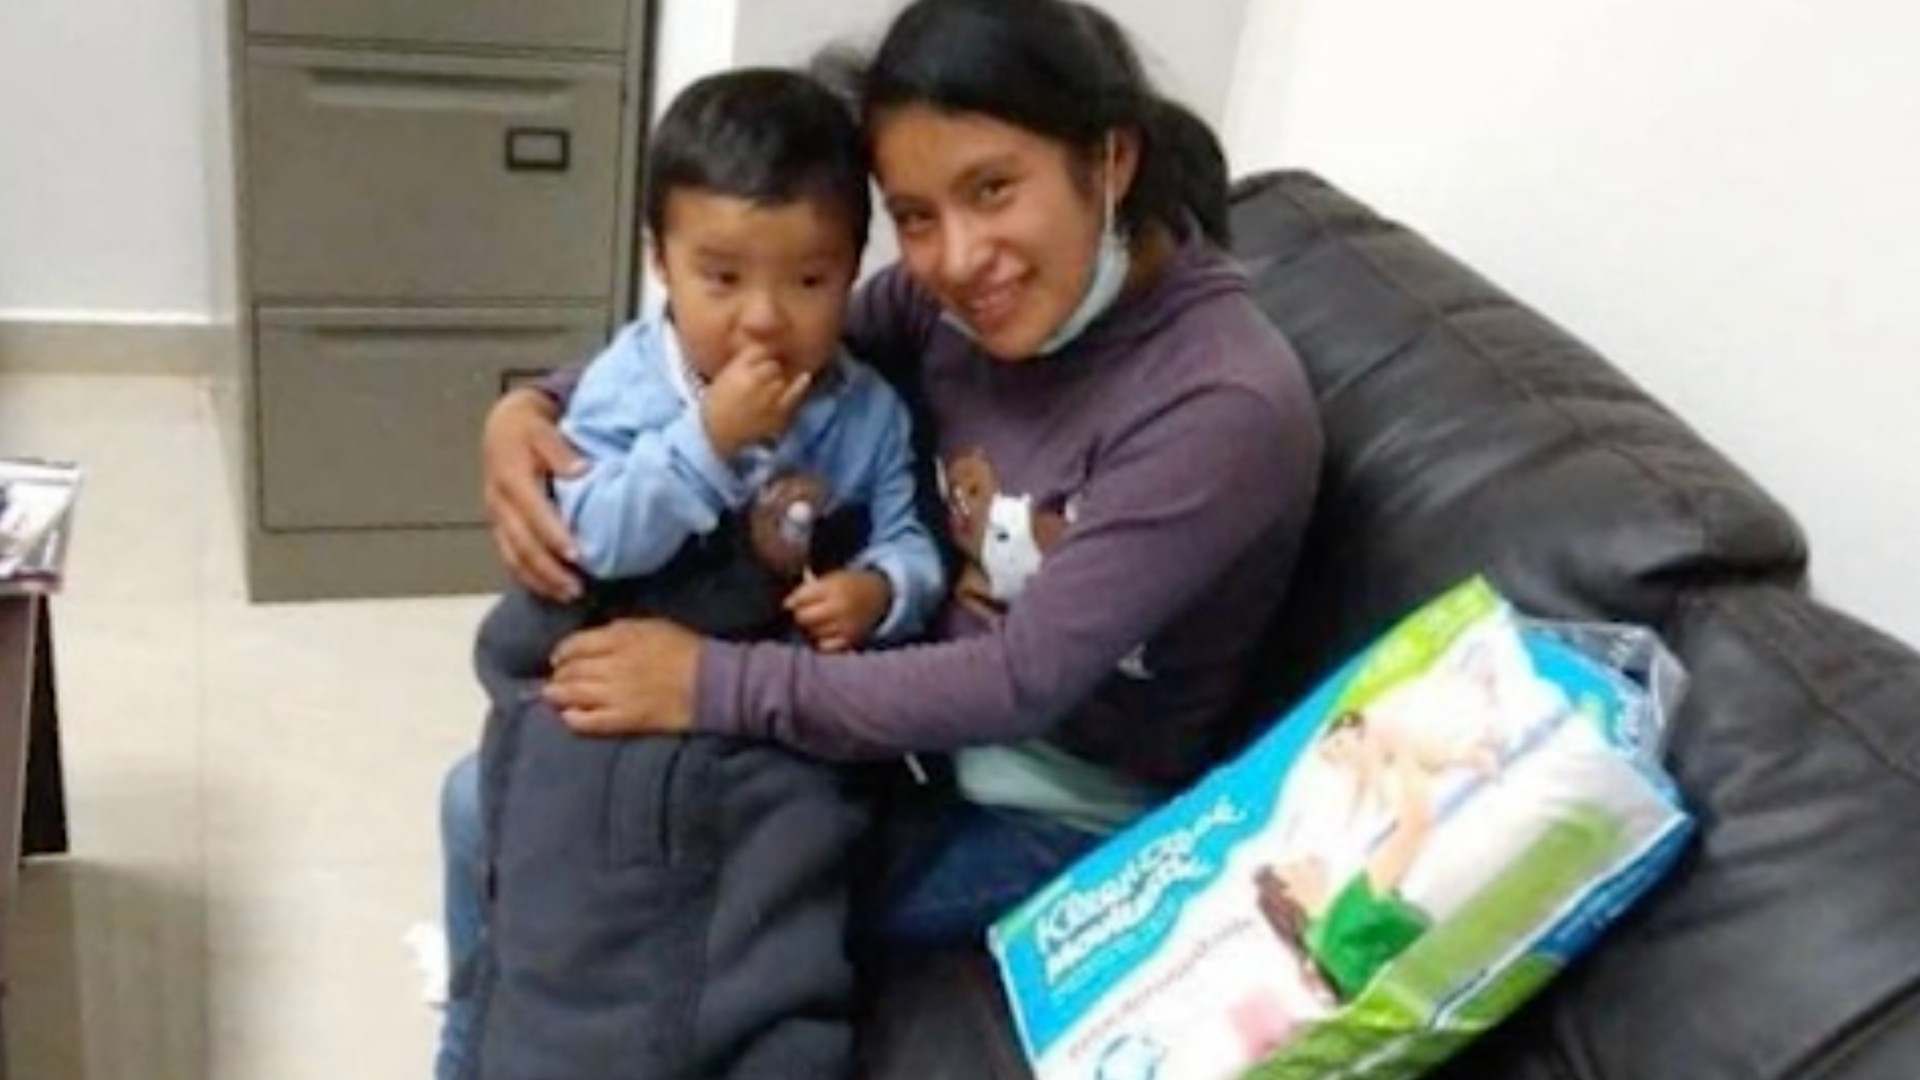 Dylan Esaú and his mother, Juana Perez, are seen in a photo released by the Chiapas Attorney General's Office and distributed by CNN.